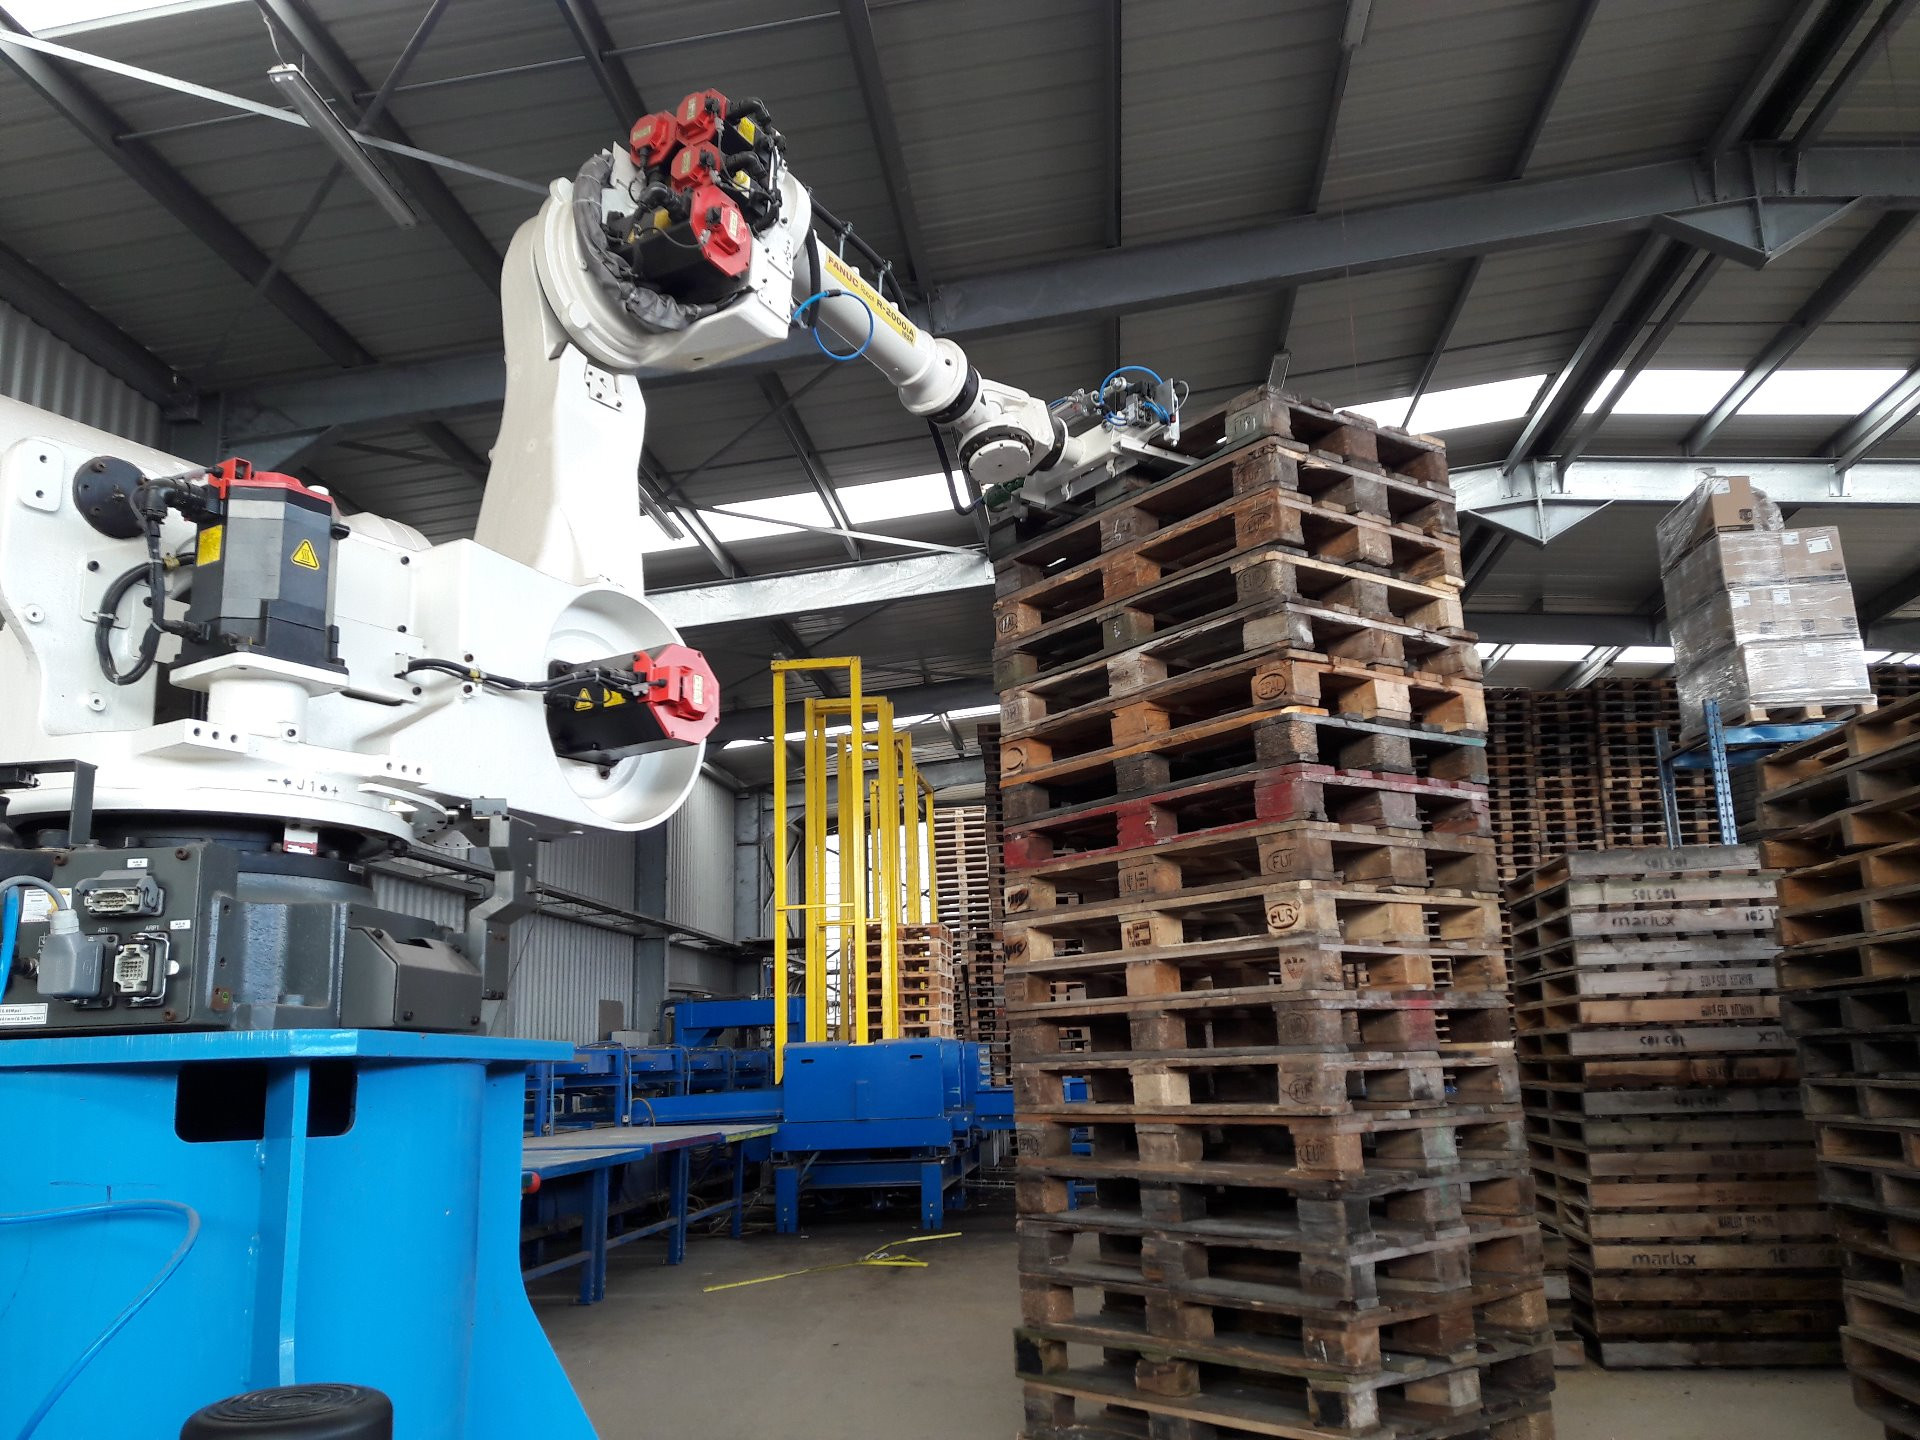 Werkmethode optimalisering, Robots, Technische integratie, BlackBox Robotics